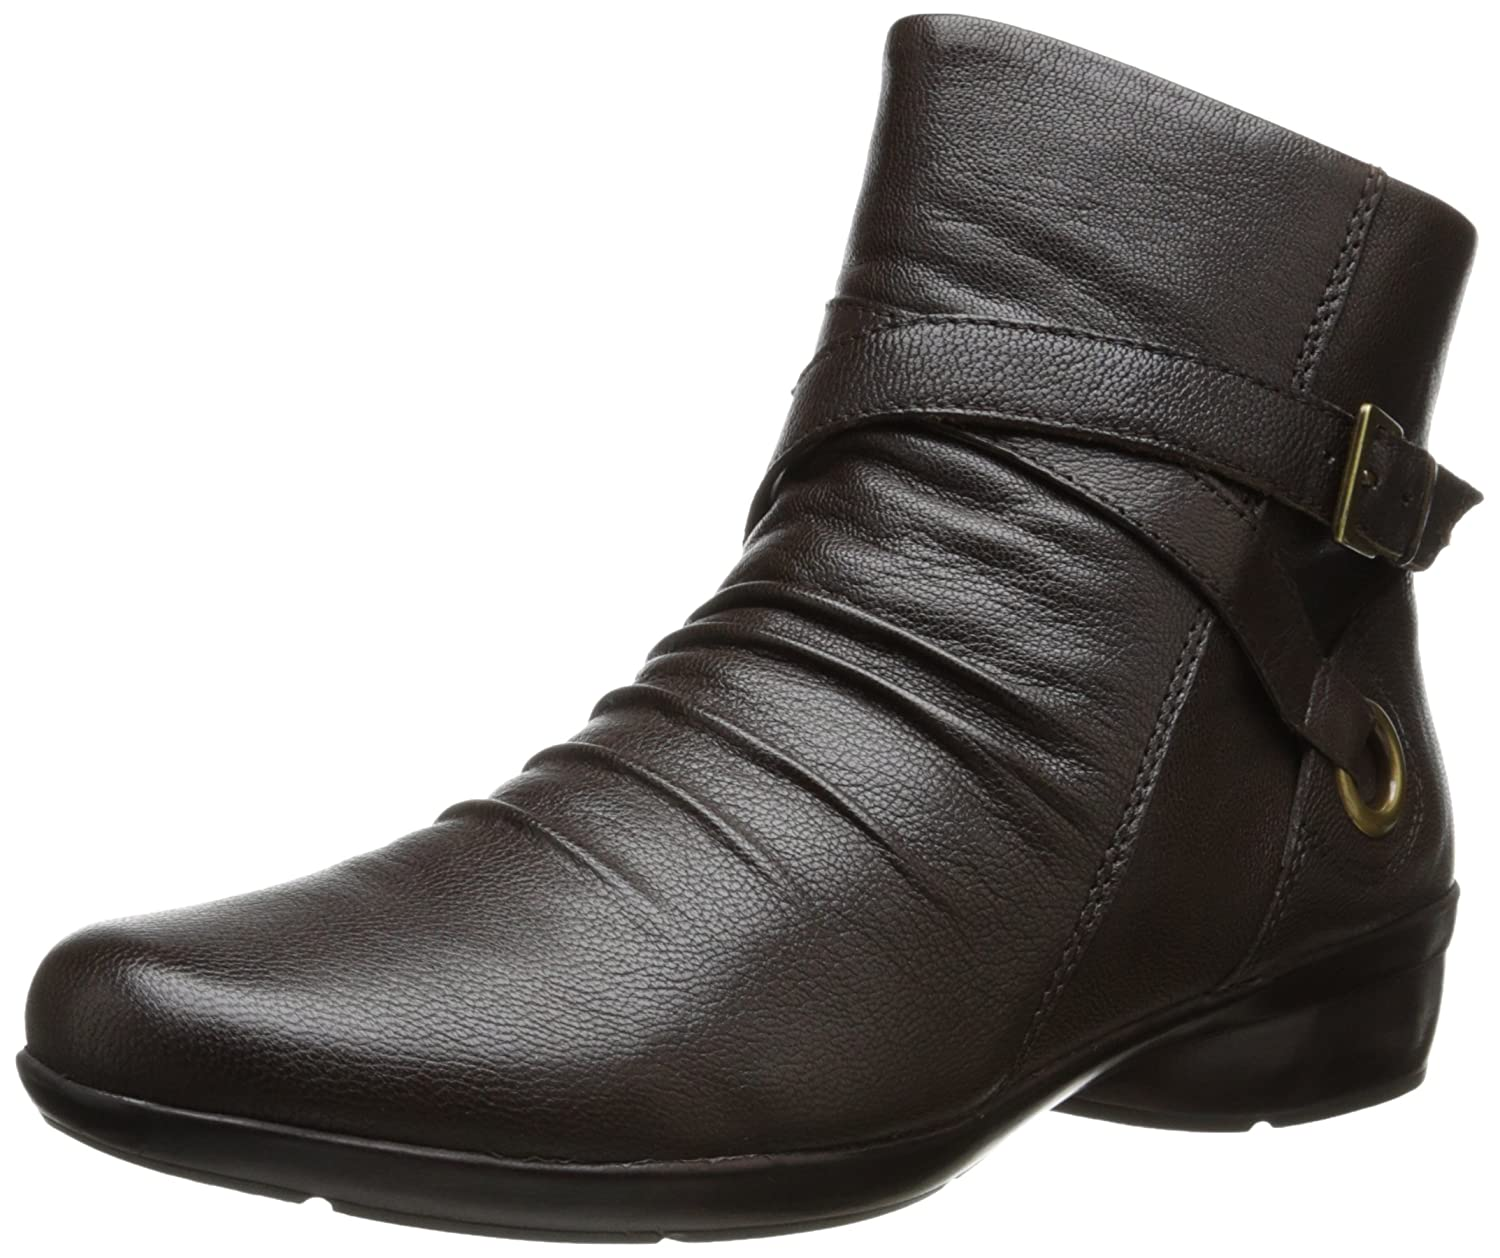 Naturalizer Women's Cycle Boot B00ISHXPMW 6.5 B(N) US|Oxford Brown Leather